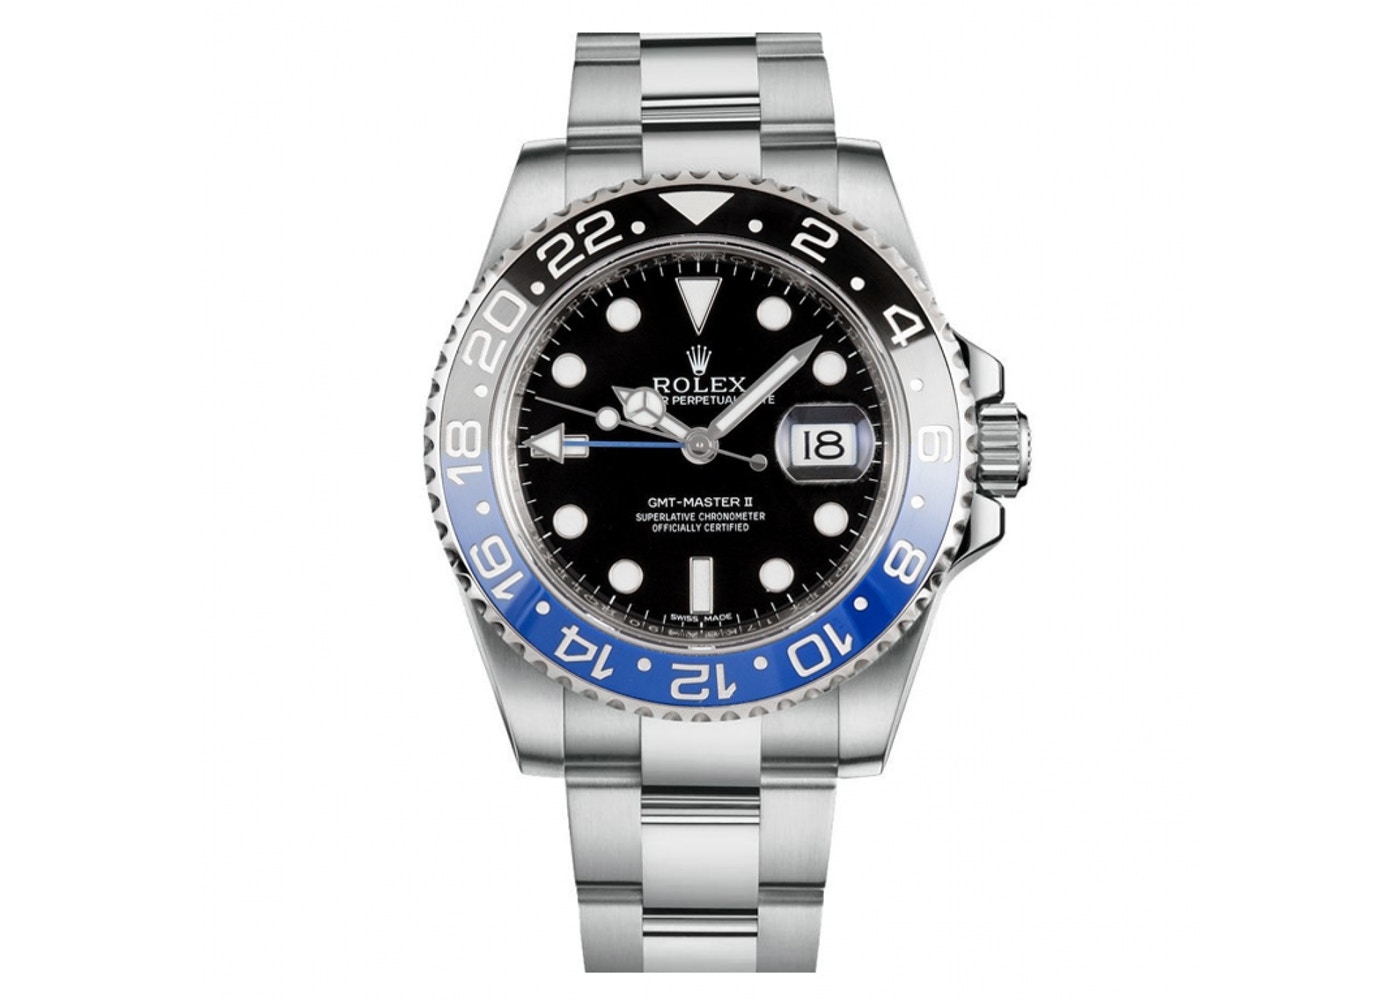 Rolex GMT-Master, rolex watches, rolex